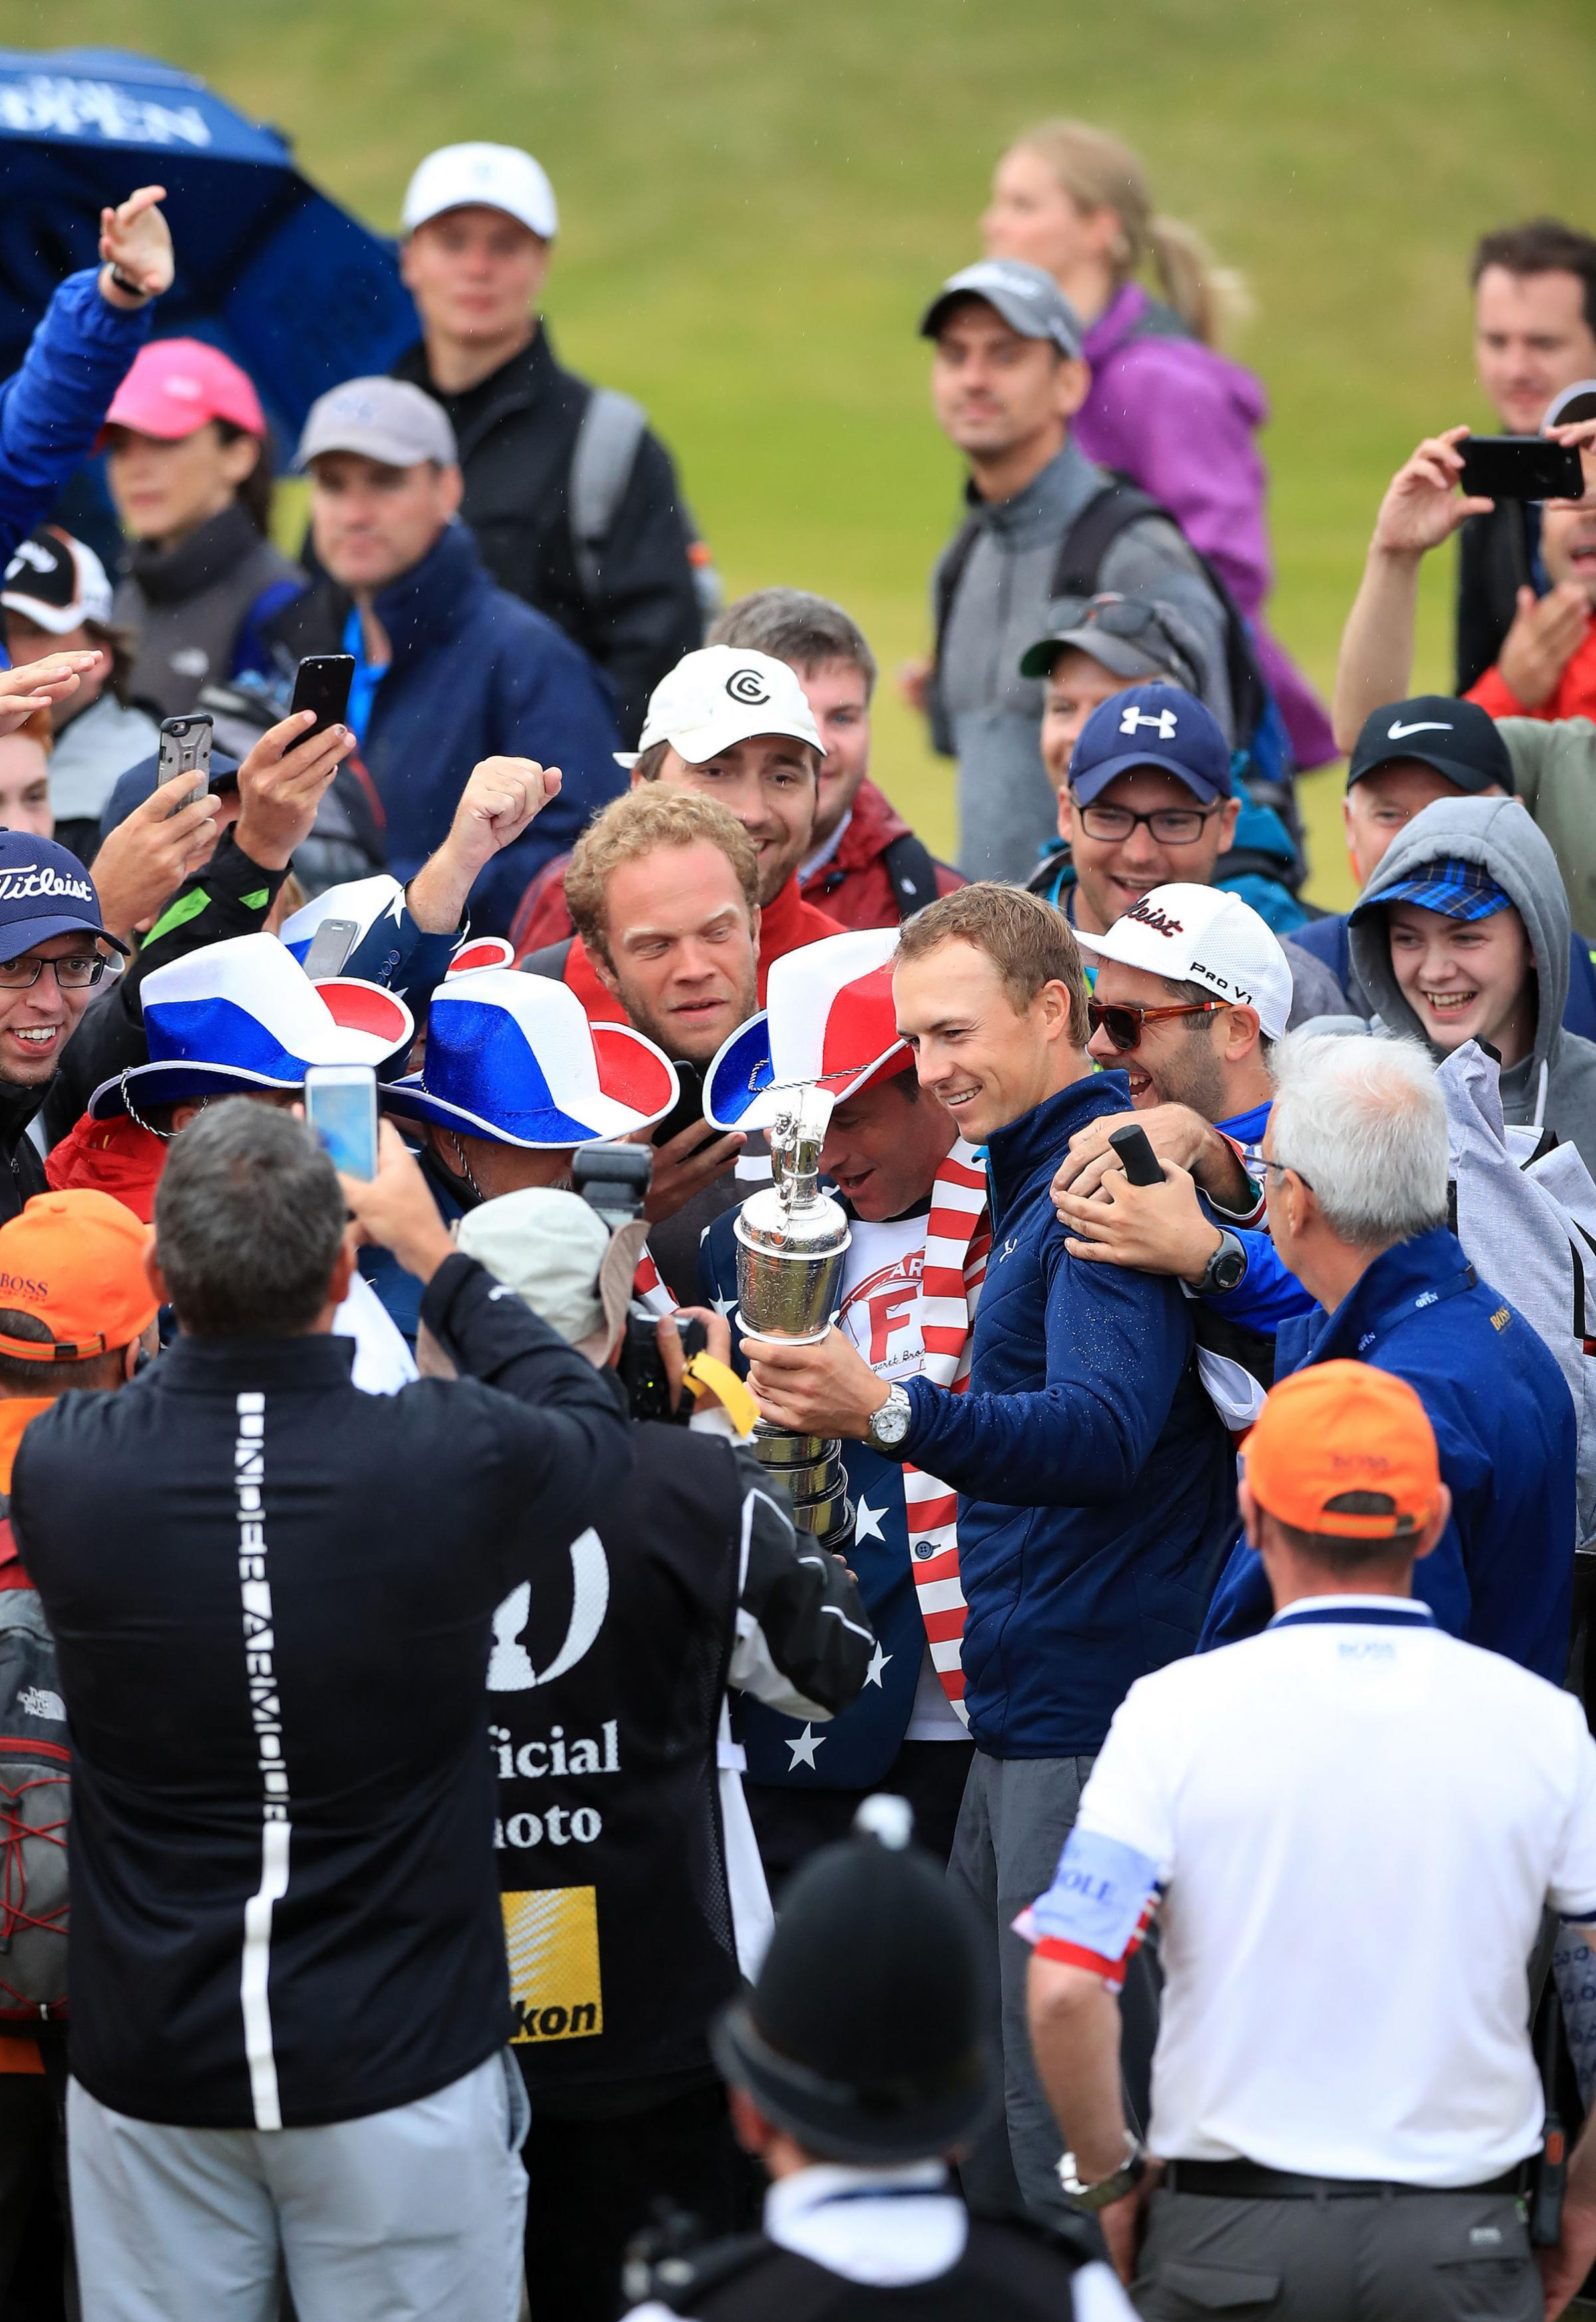 Jordan Spieth celebrates with spectators at Royal Birkdale after winning the Open championship – Picture: Peter Byrne/PA Wire